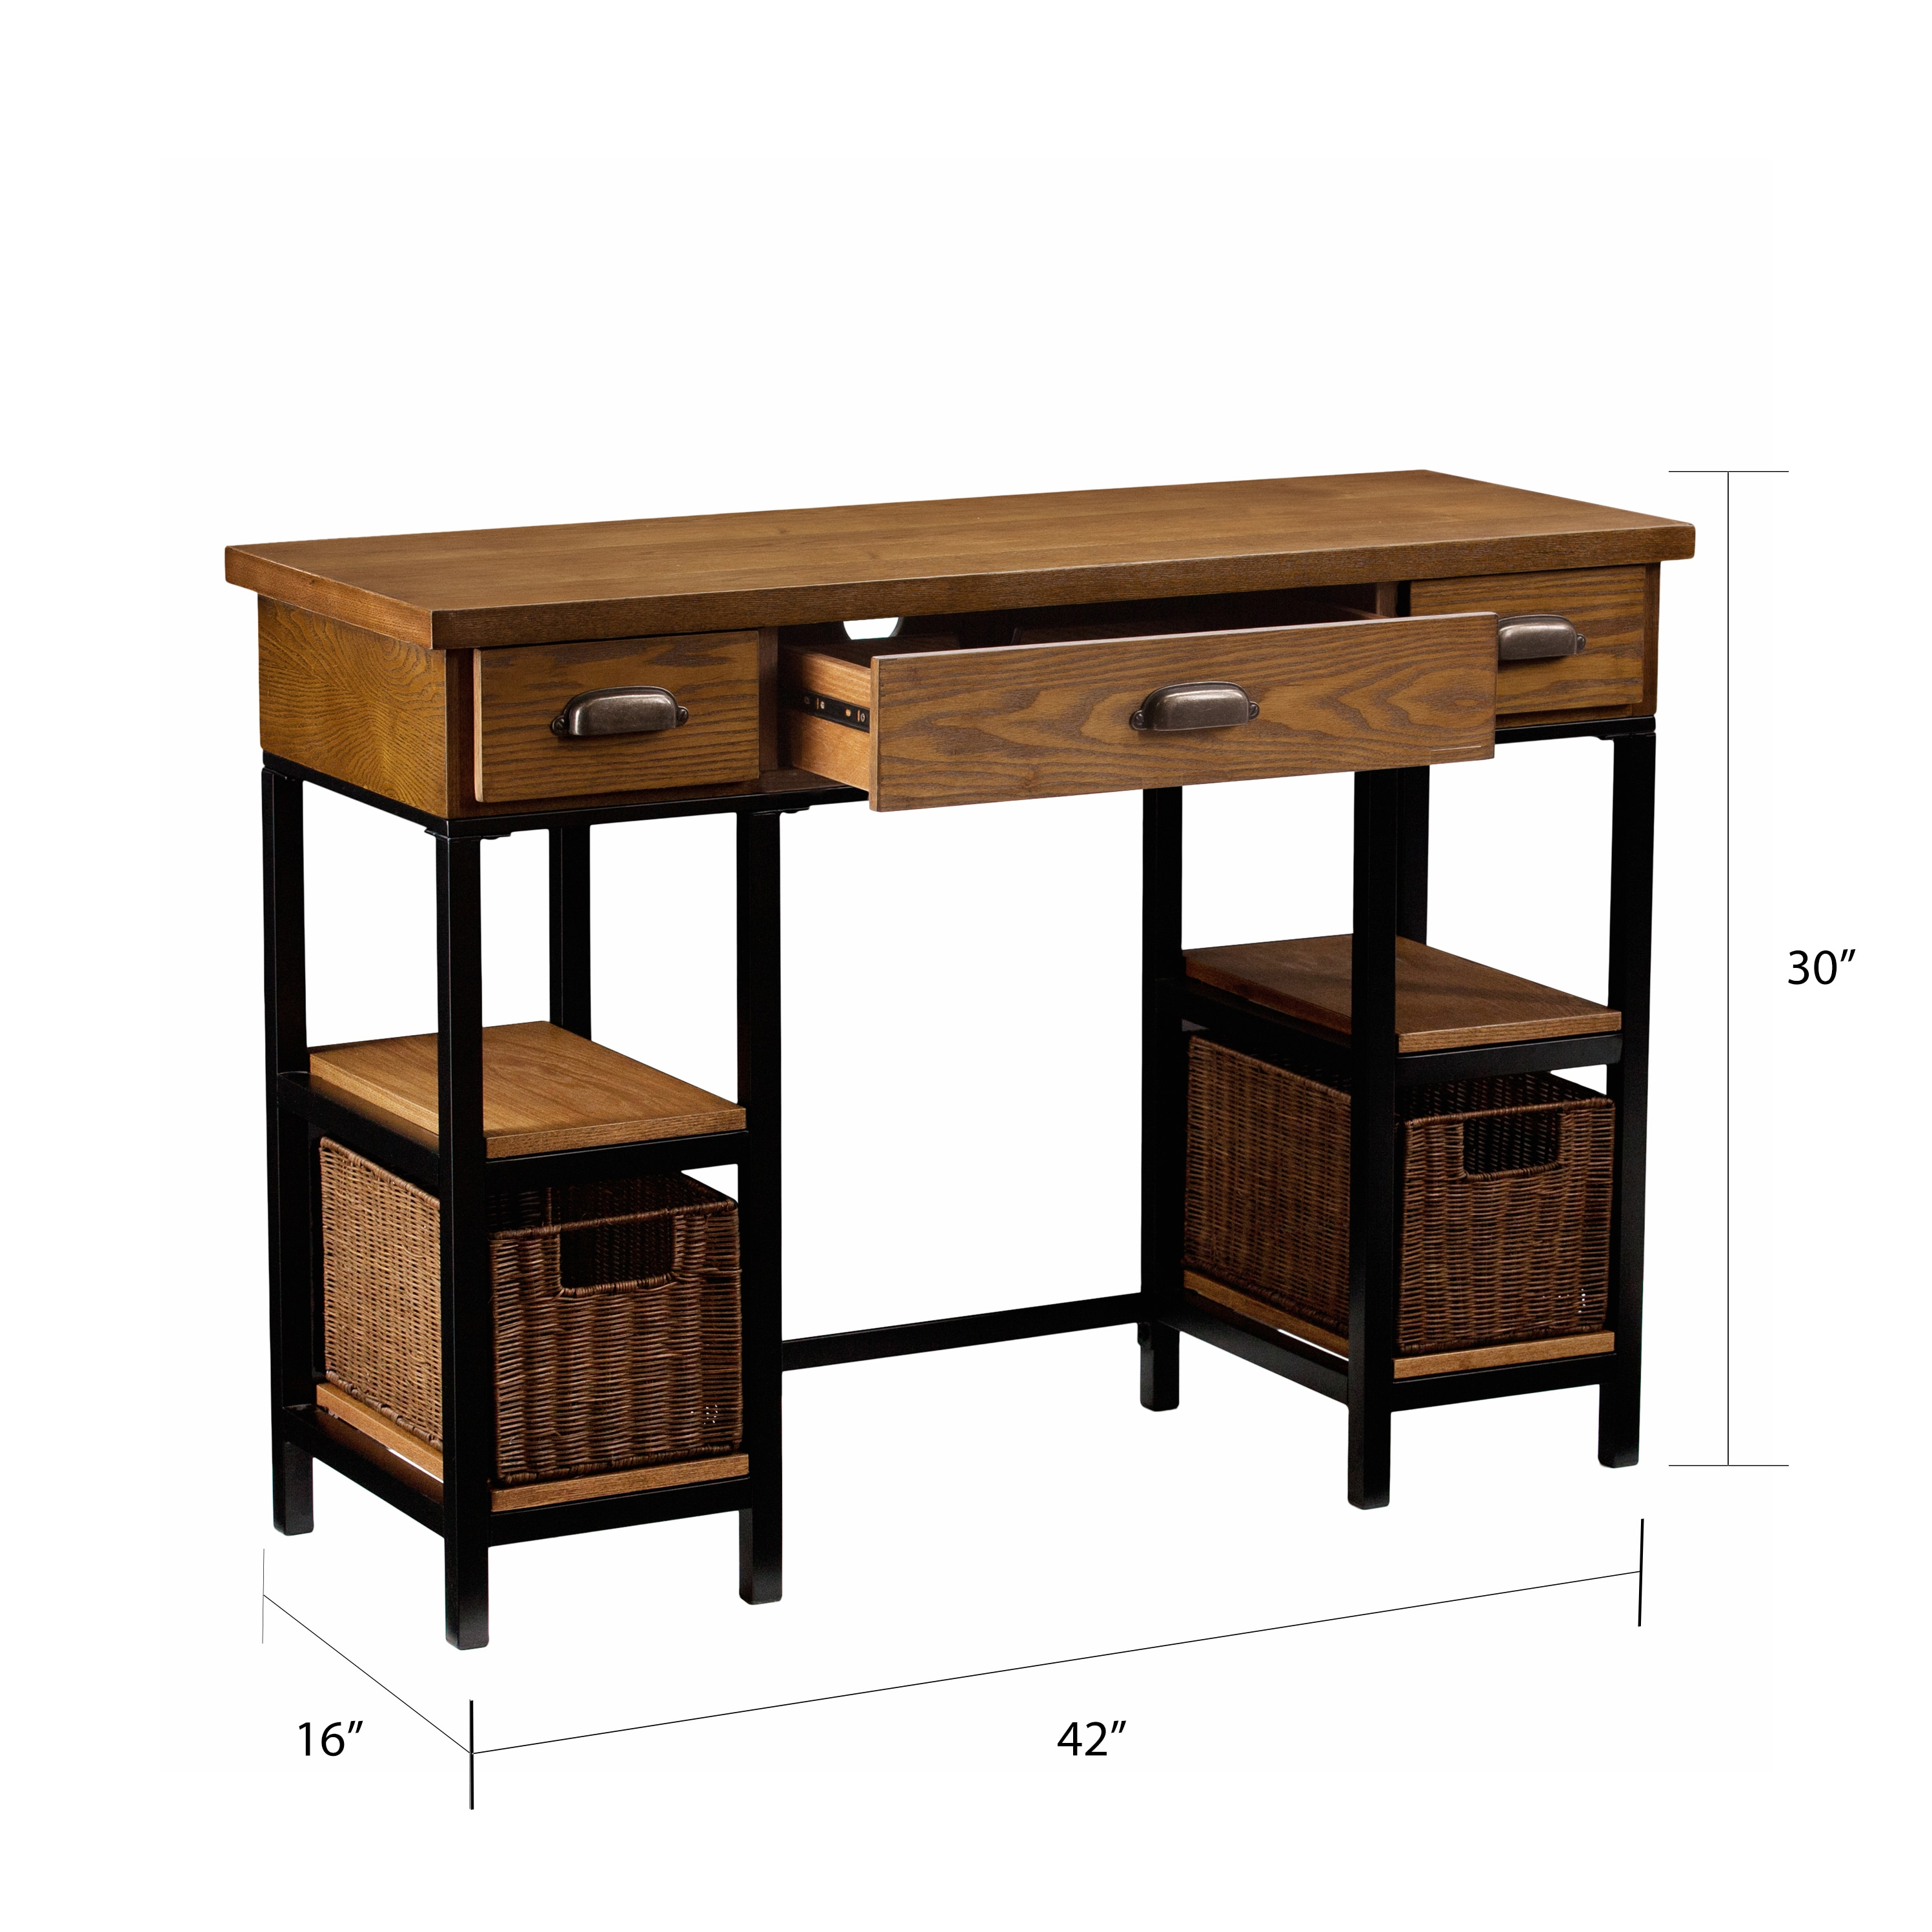 gb en unit wood material is cm with spr durable add brown light products computer natural desk solid on desks ikea a hemnes